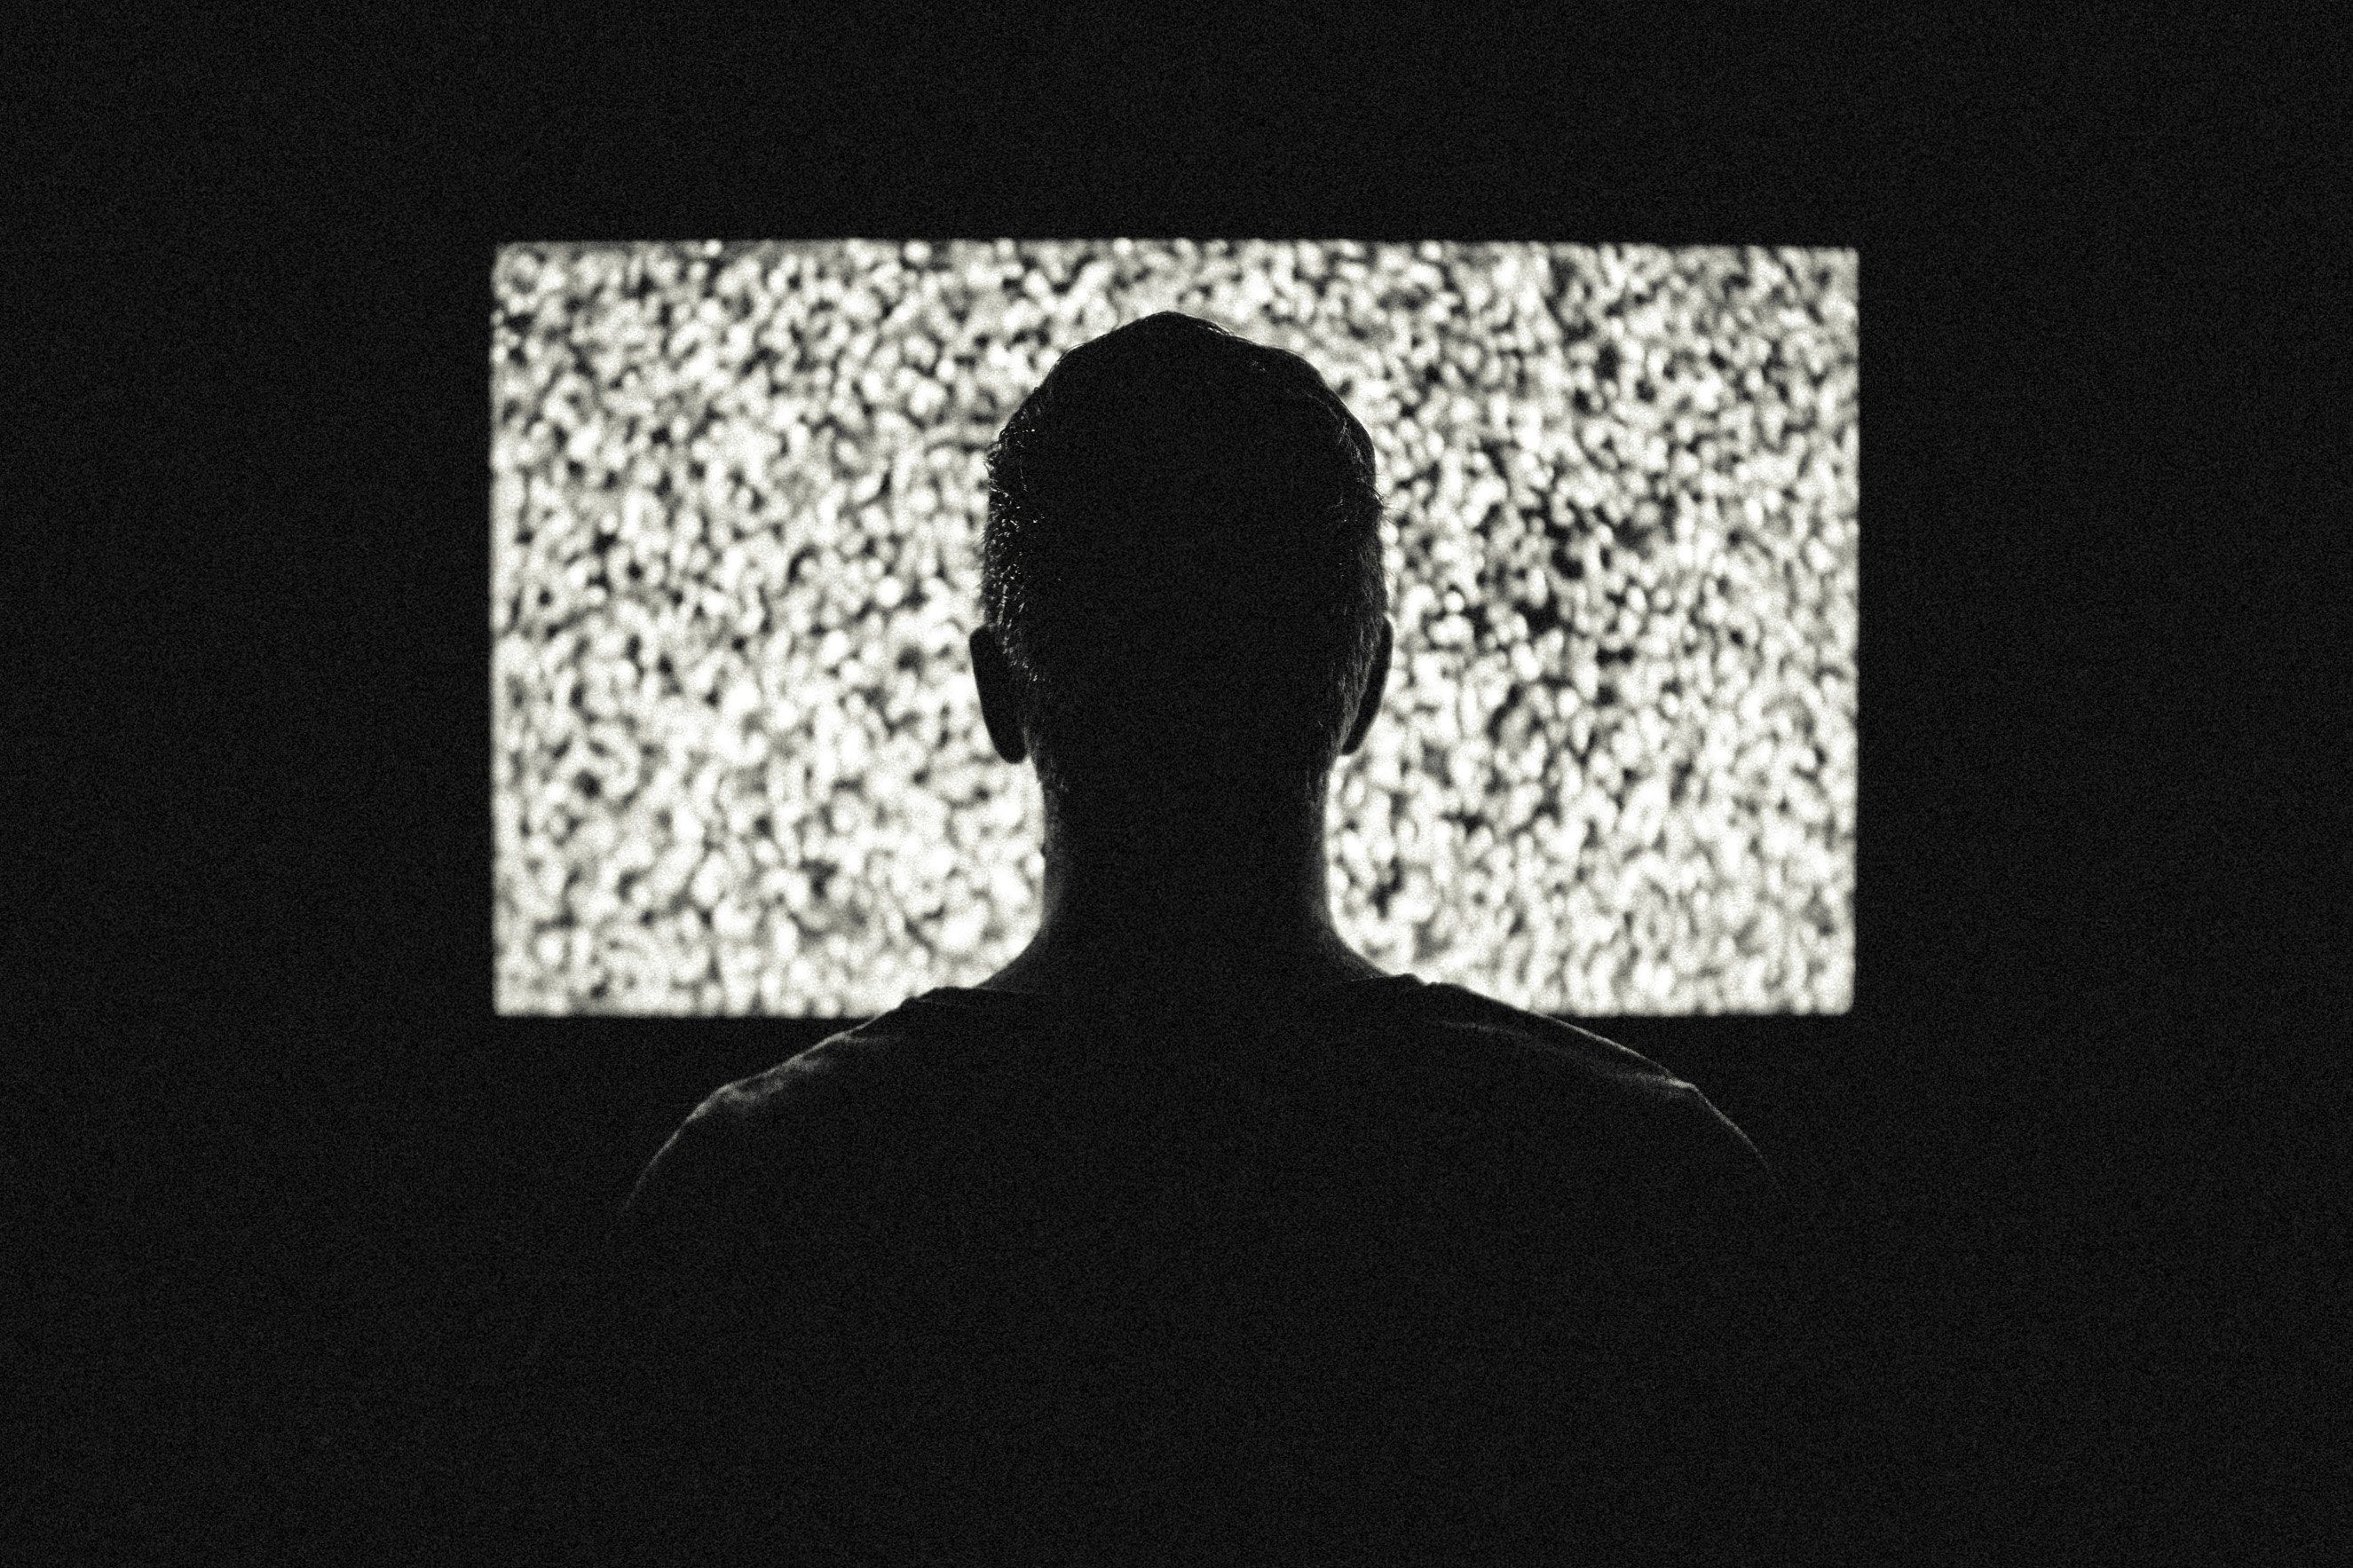 Person in front of a screen with static